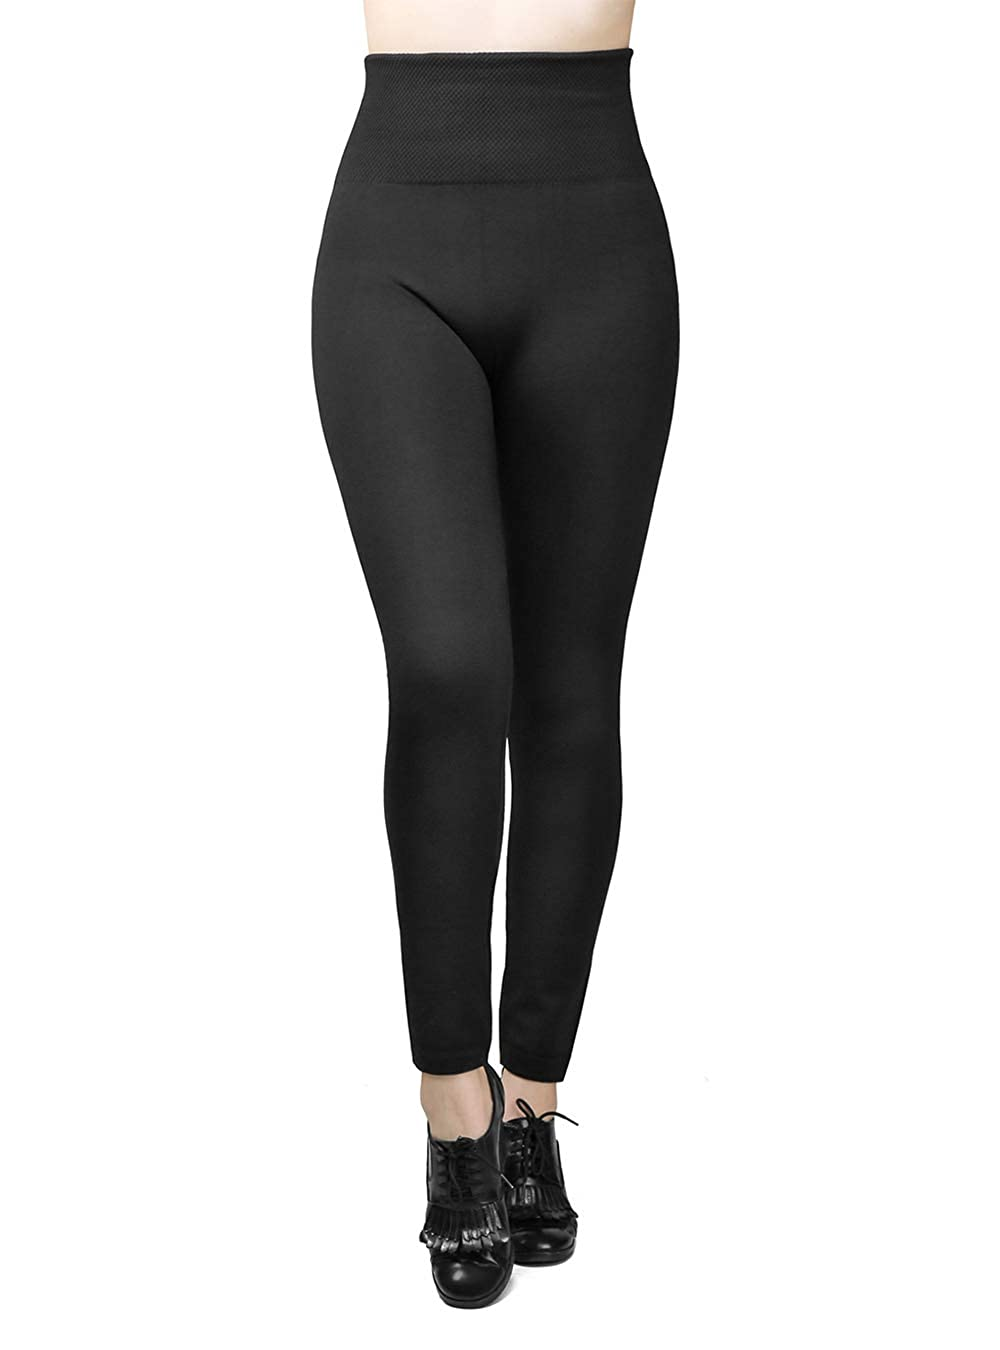 947cdc04edf087 ◇Winter leggings for women - Simple elegant color makes Moon Wood womens  leggings versatile enough for all occasions and clothing. These high quality  ...